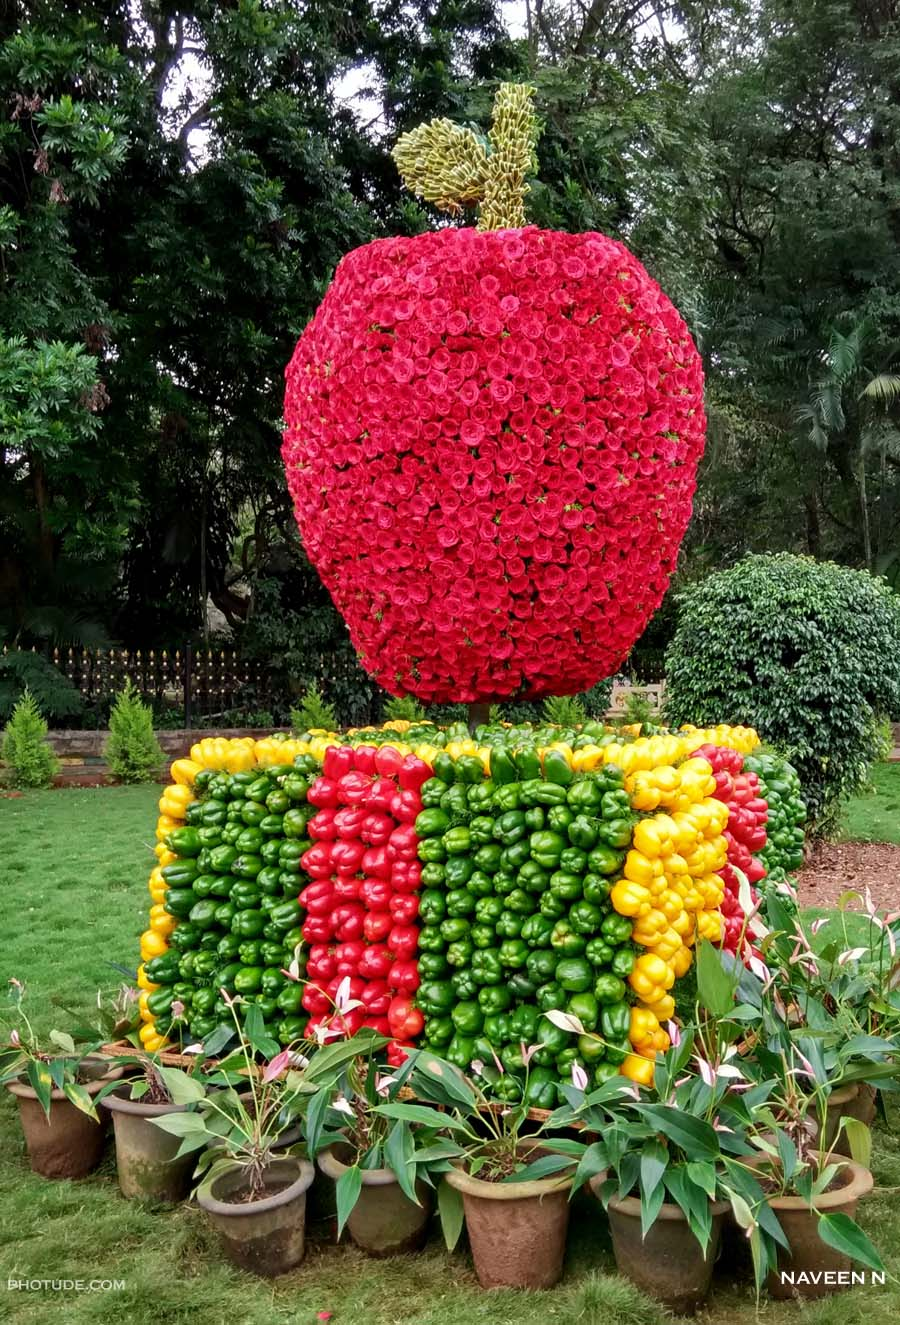 Apple made of Roses